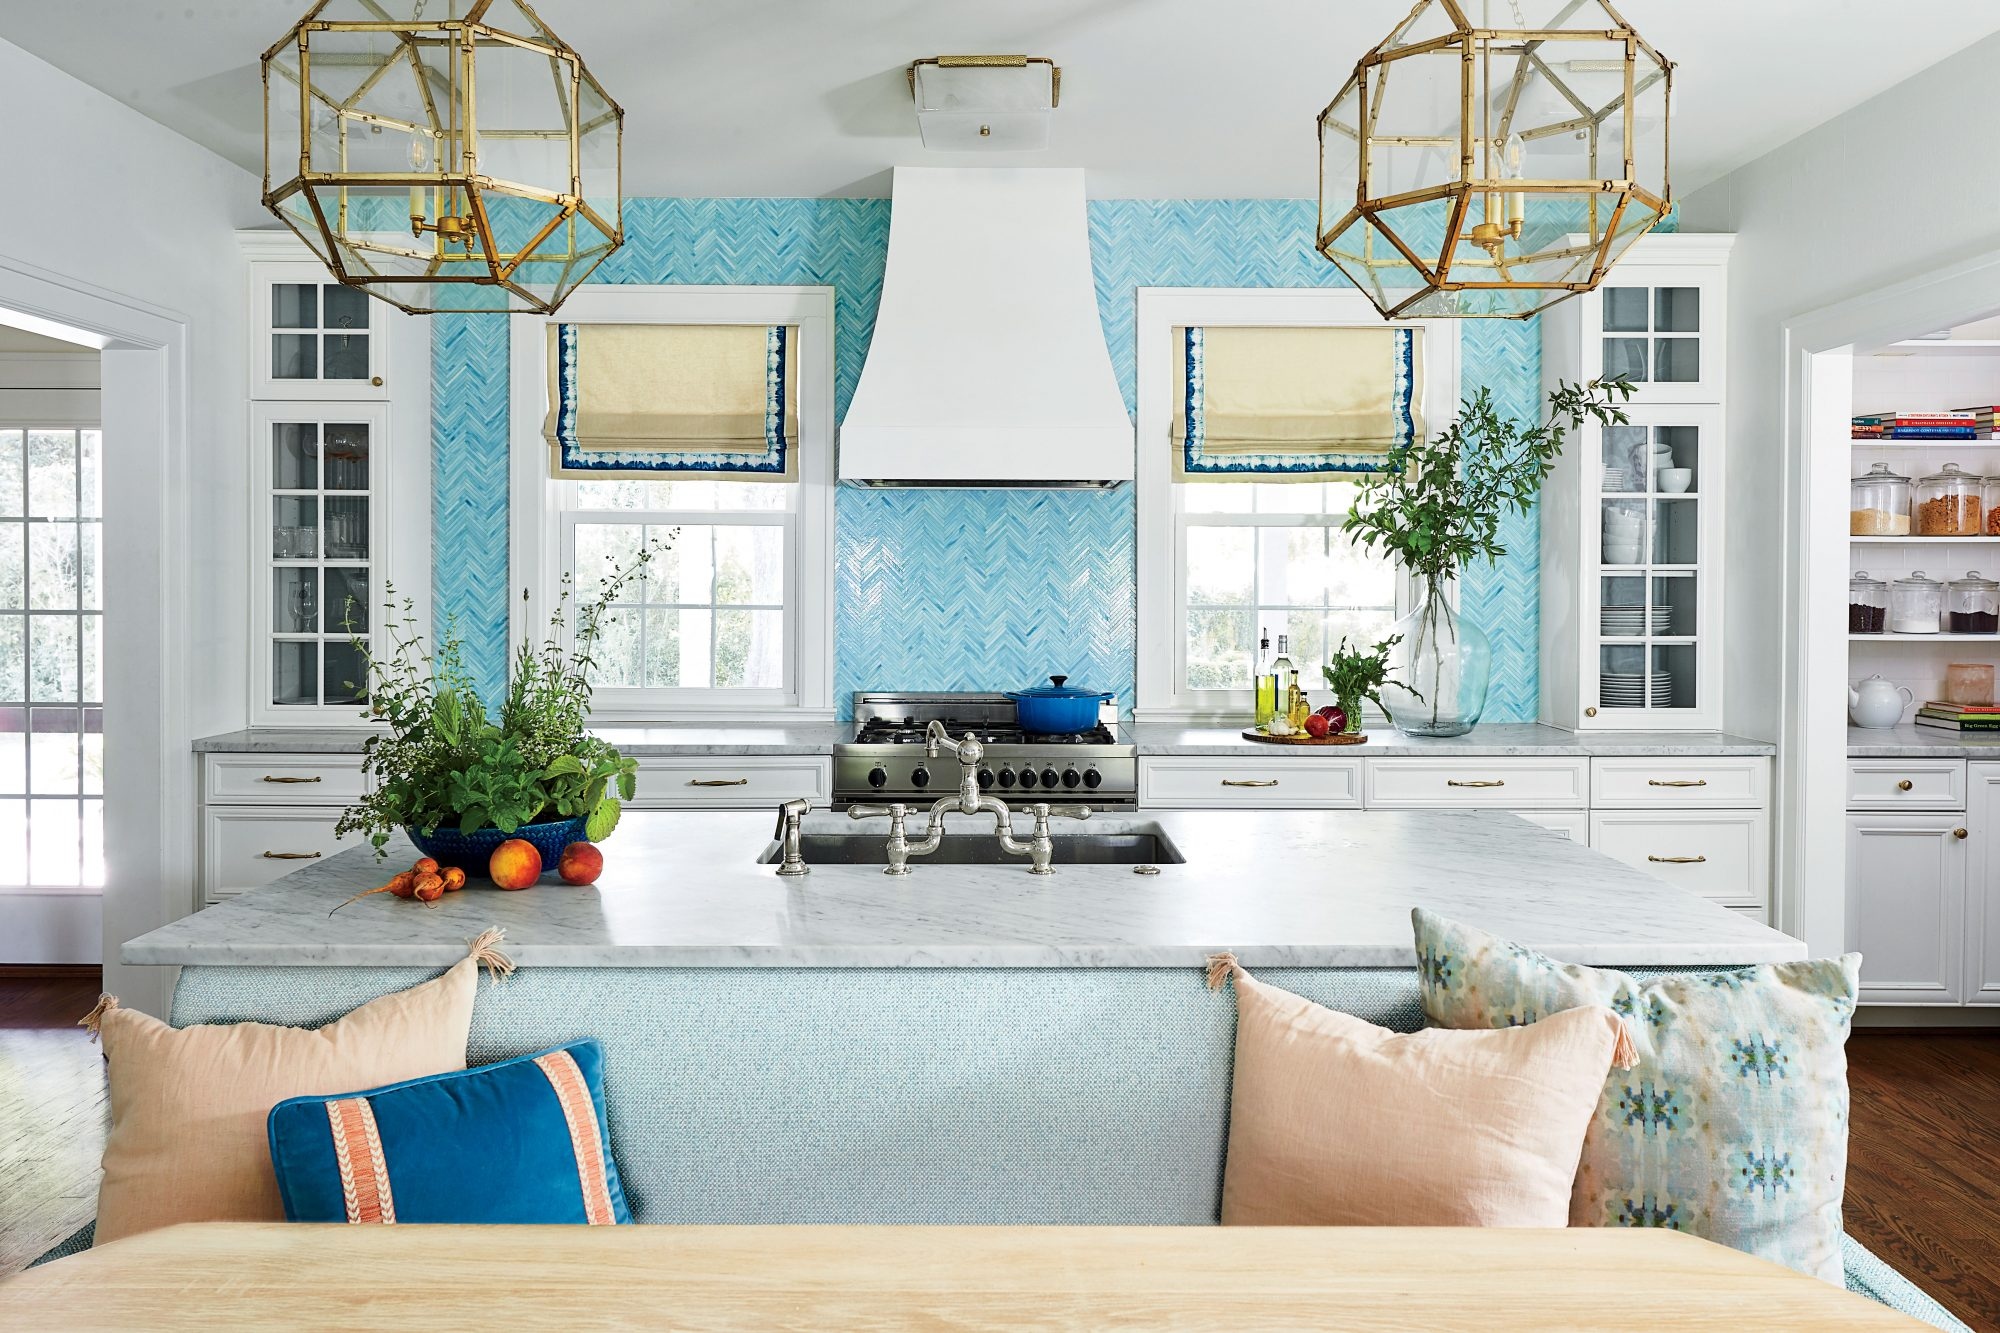 Kitchen Banquette Seating Is Trending For 2019 Southern Living